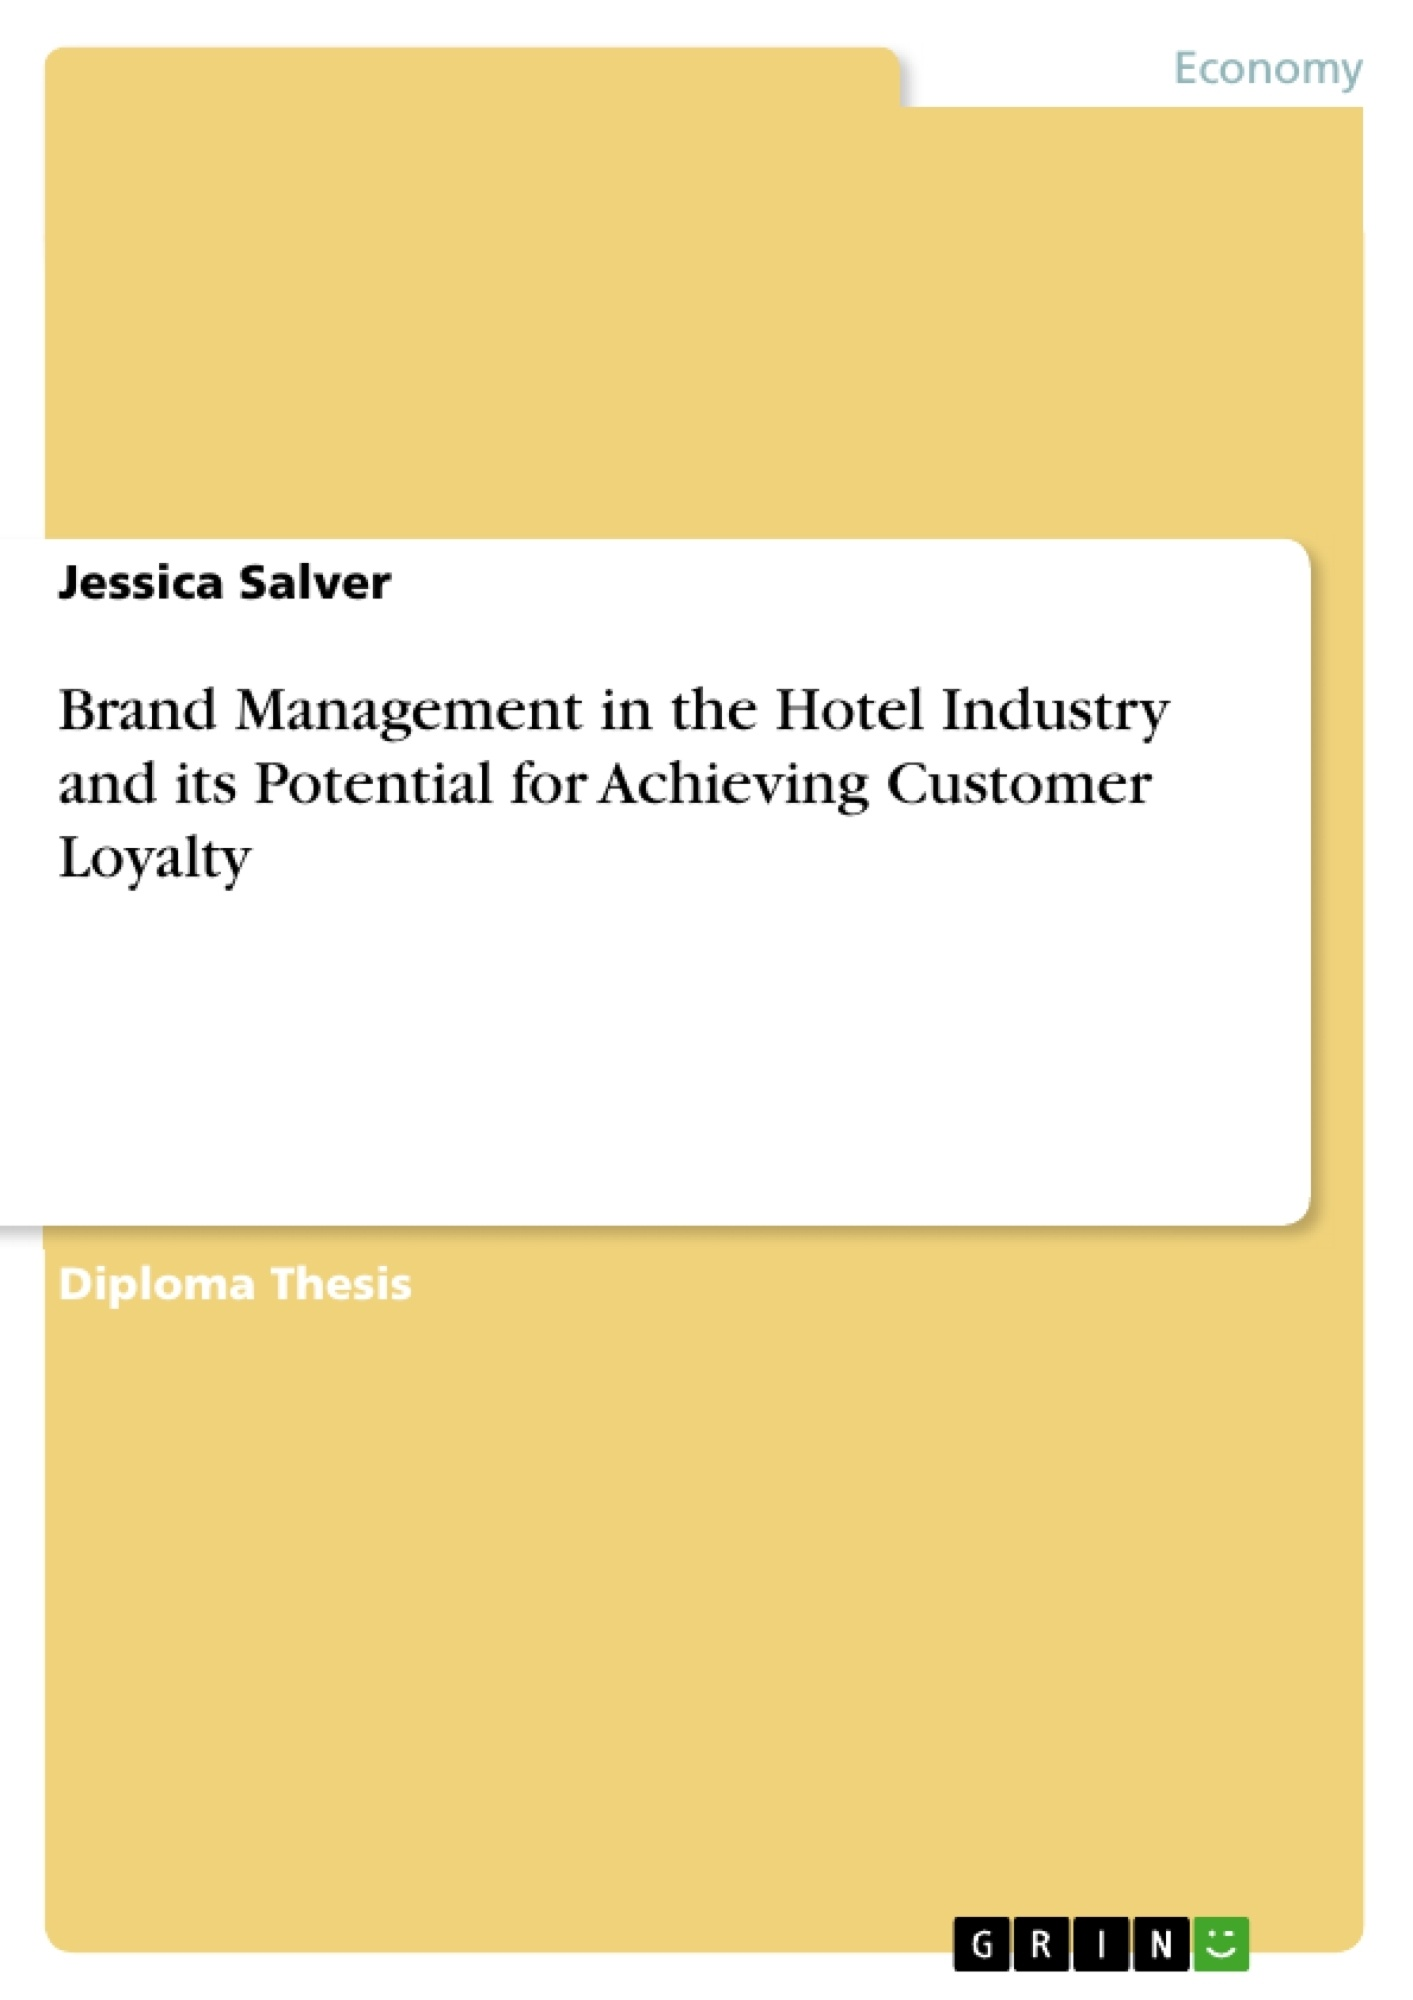 Title: Brand Management in the Hotel Industry and its Potential for Achieving Customer Loyalty